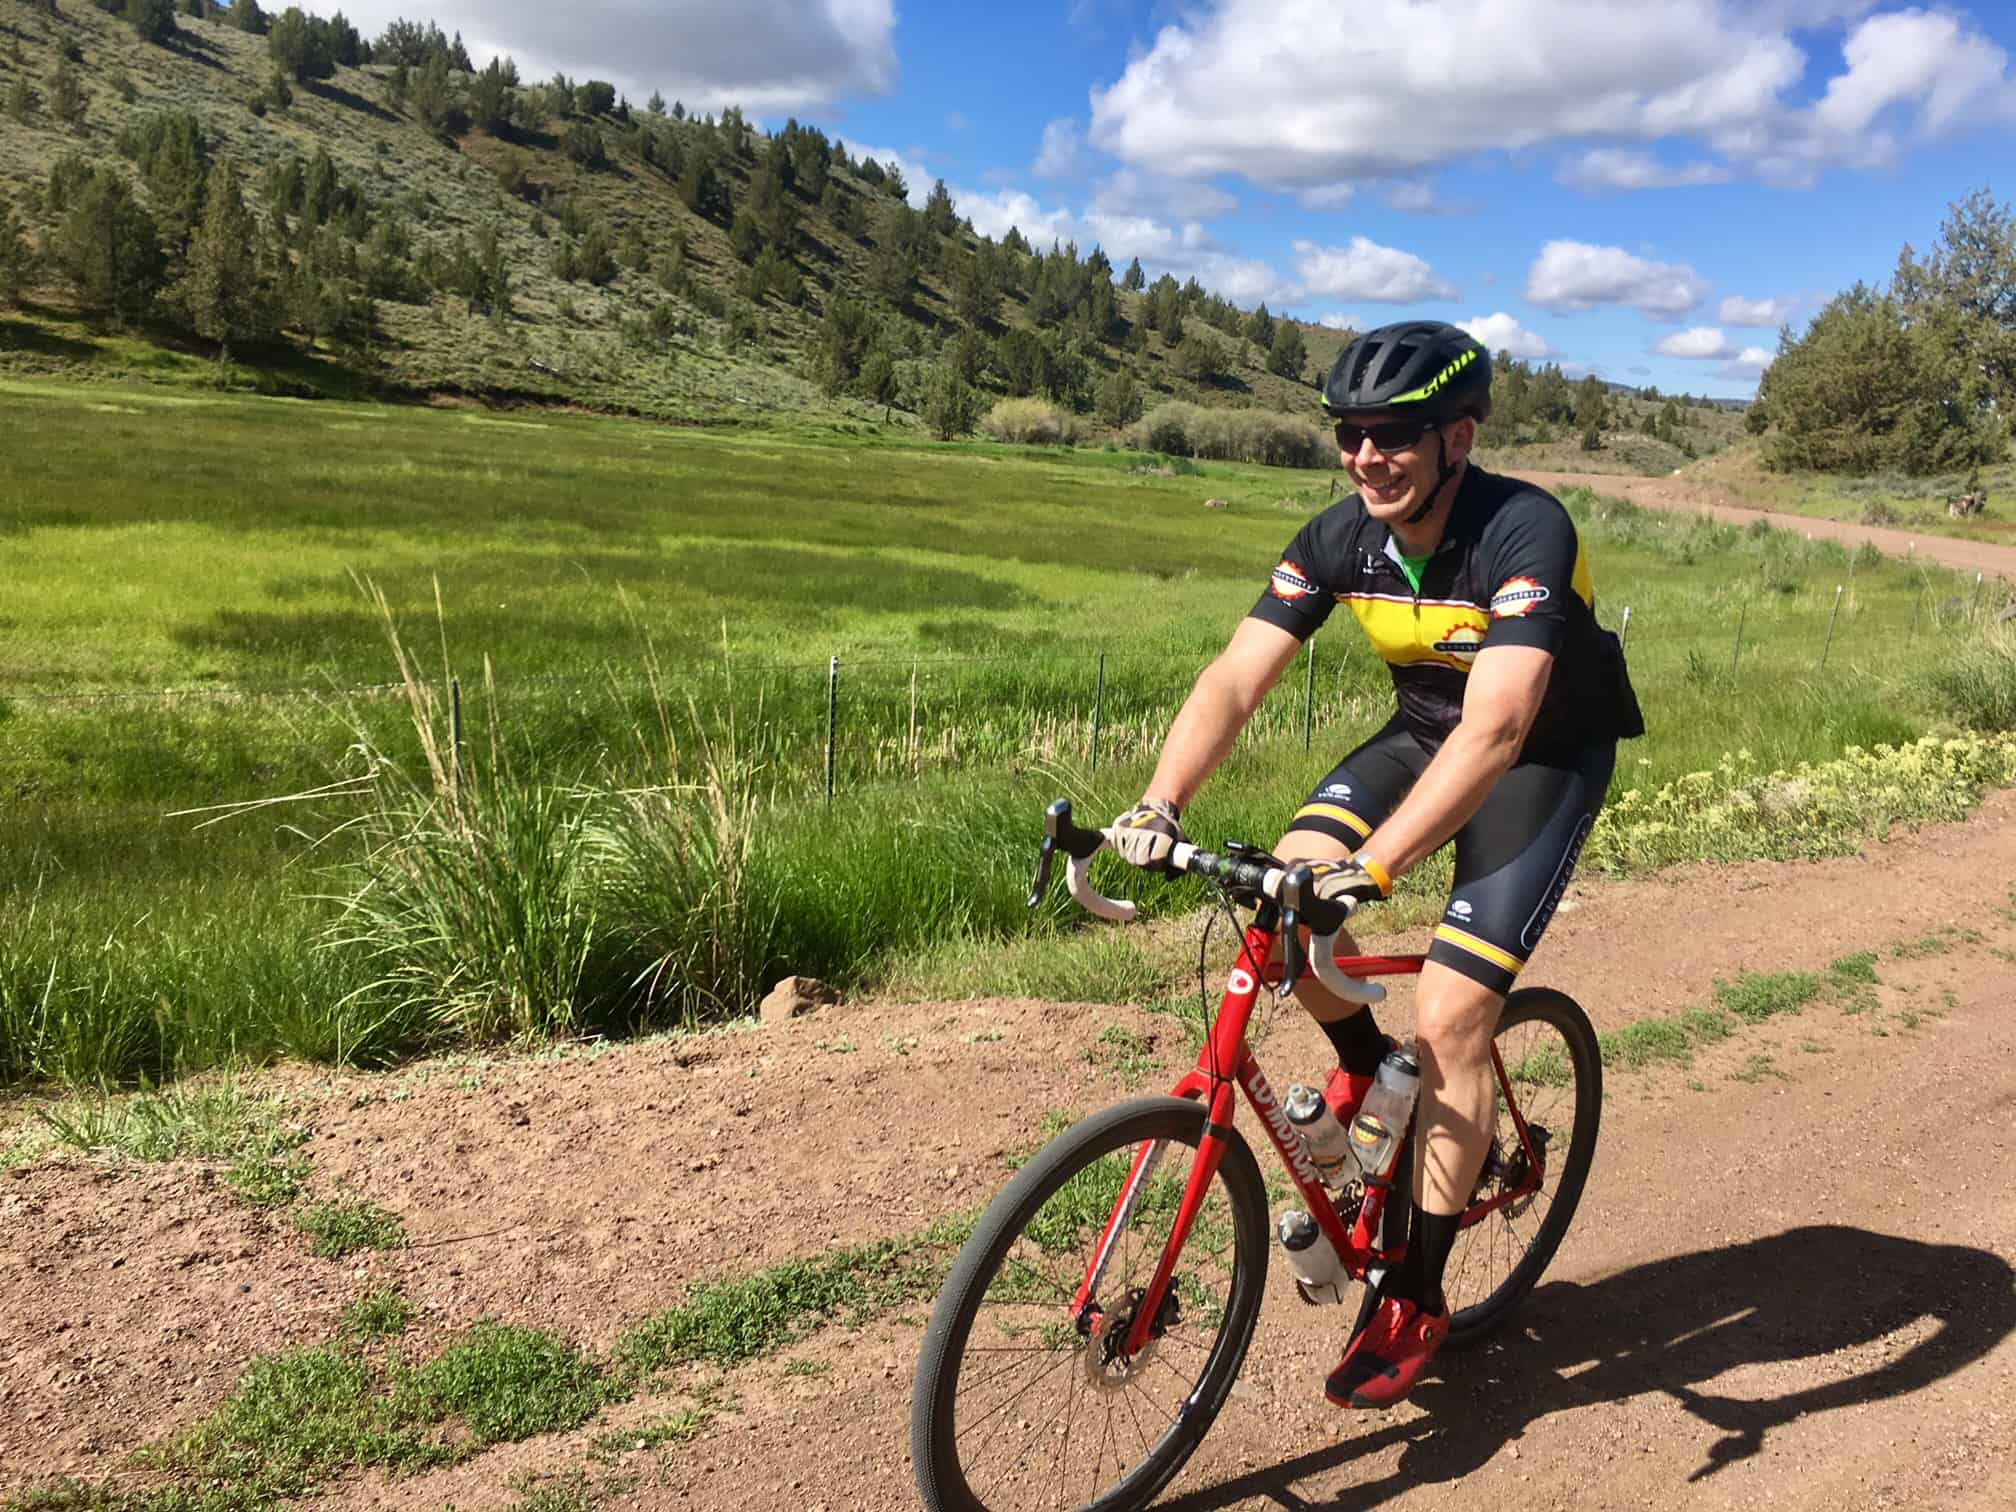 Gravel cyclist on road near Madras, Oregon with green fields in background.